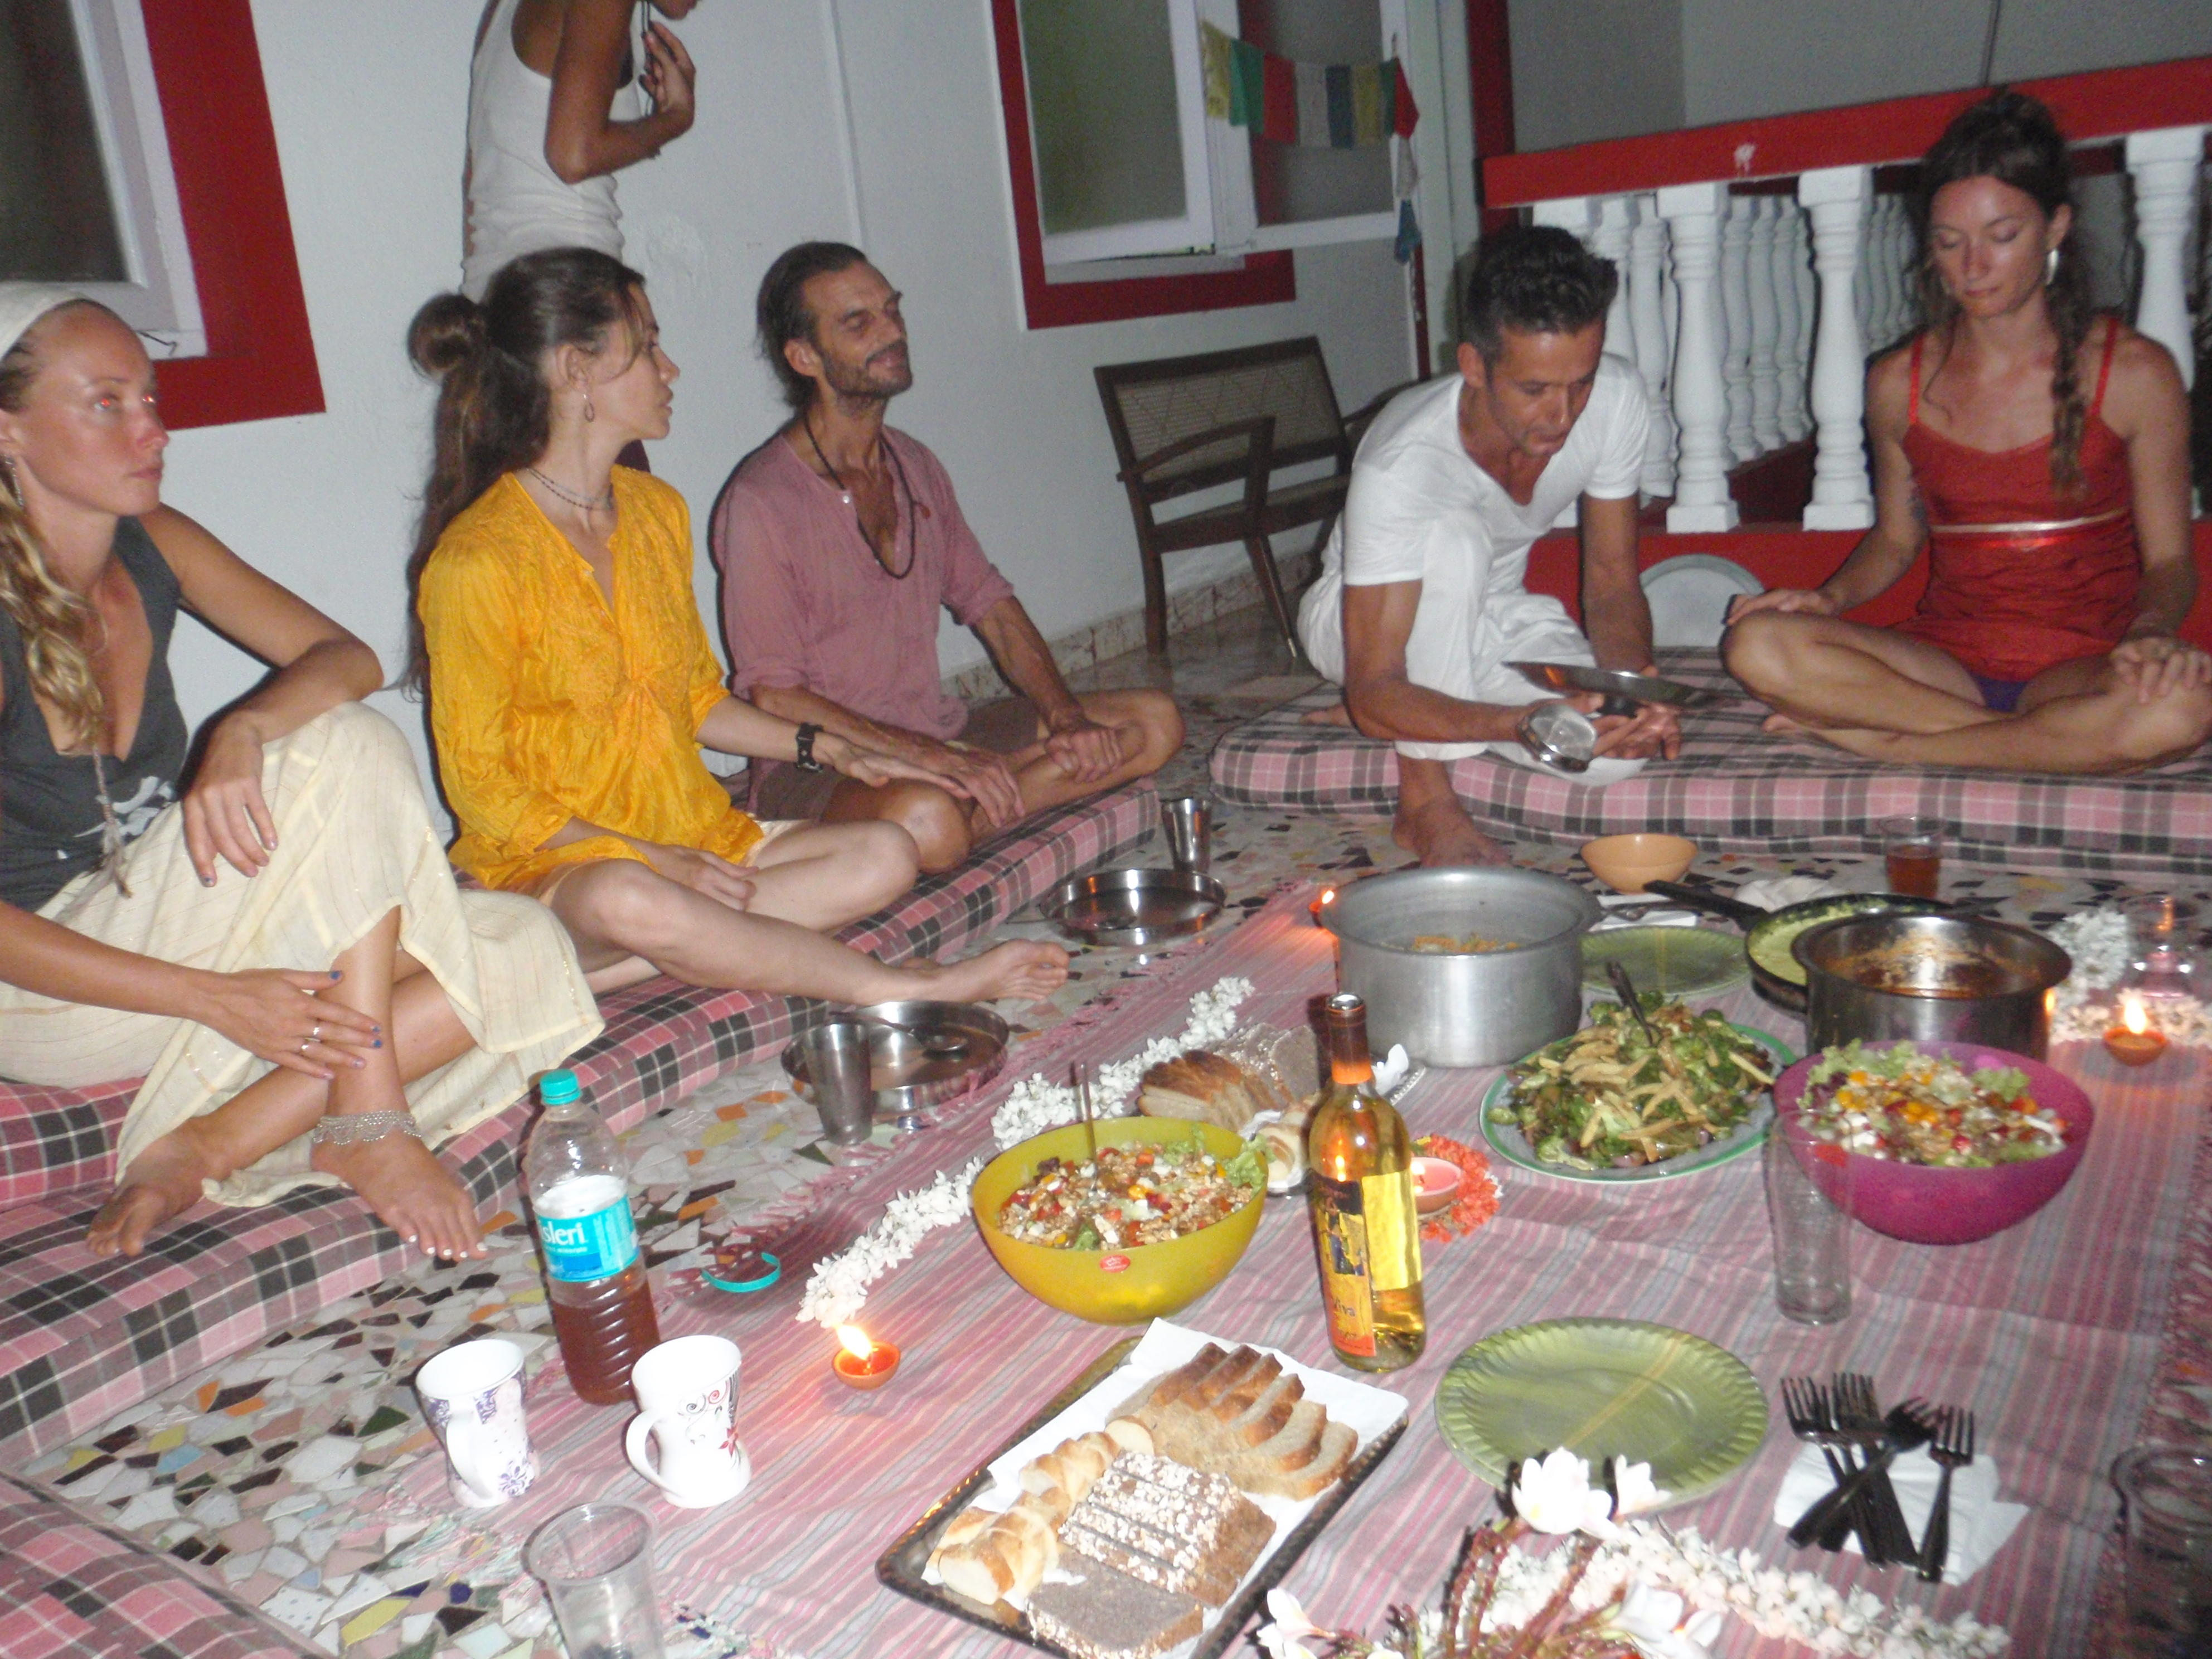 Party Rolf& marci etc...